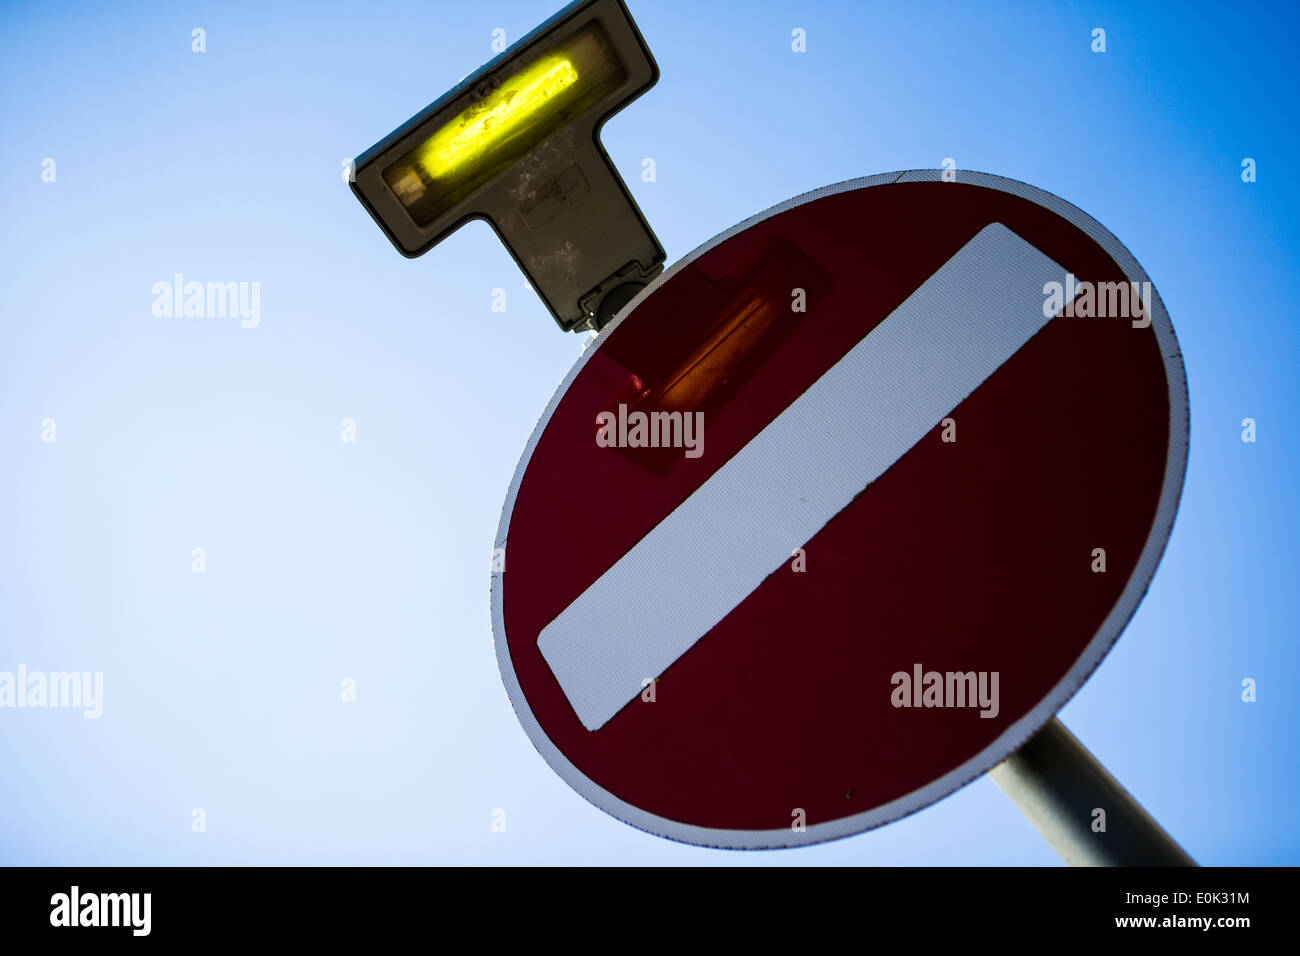 No Entry road traffic sign - Stock Image